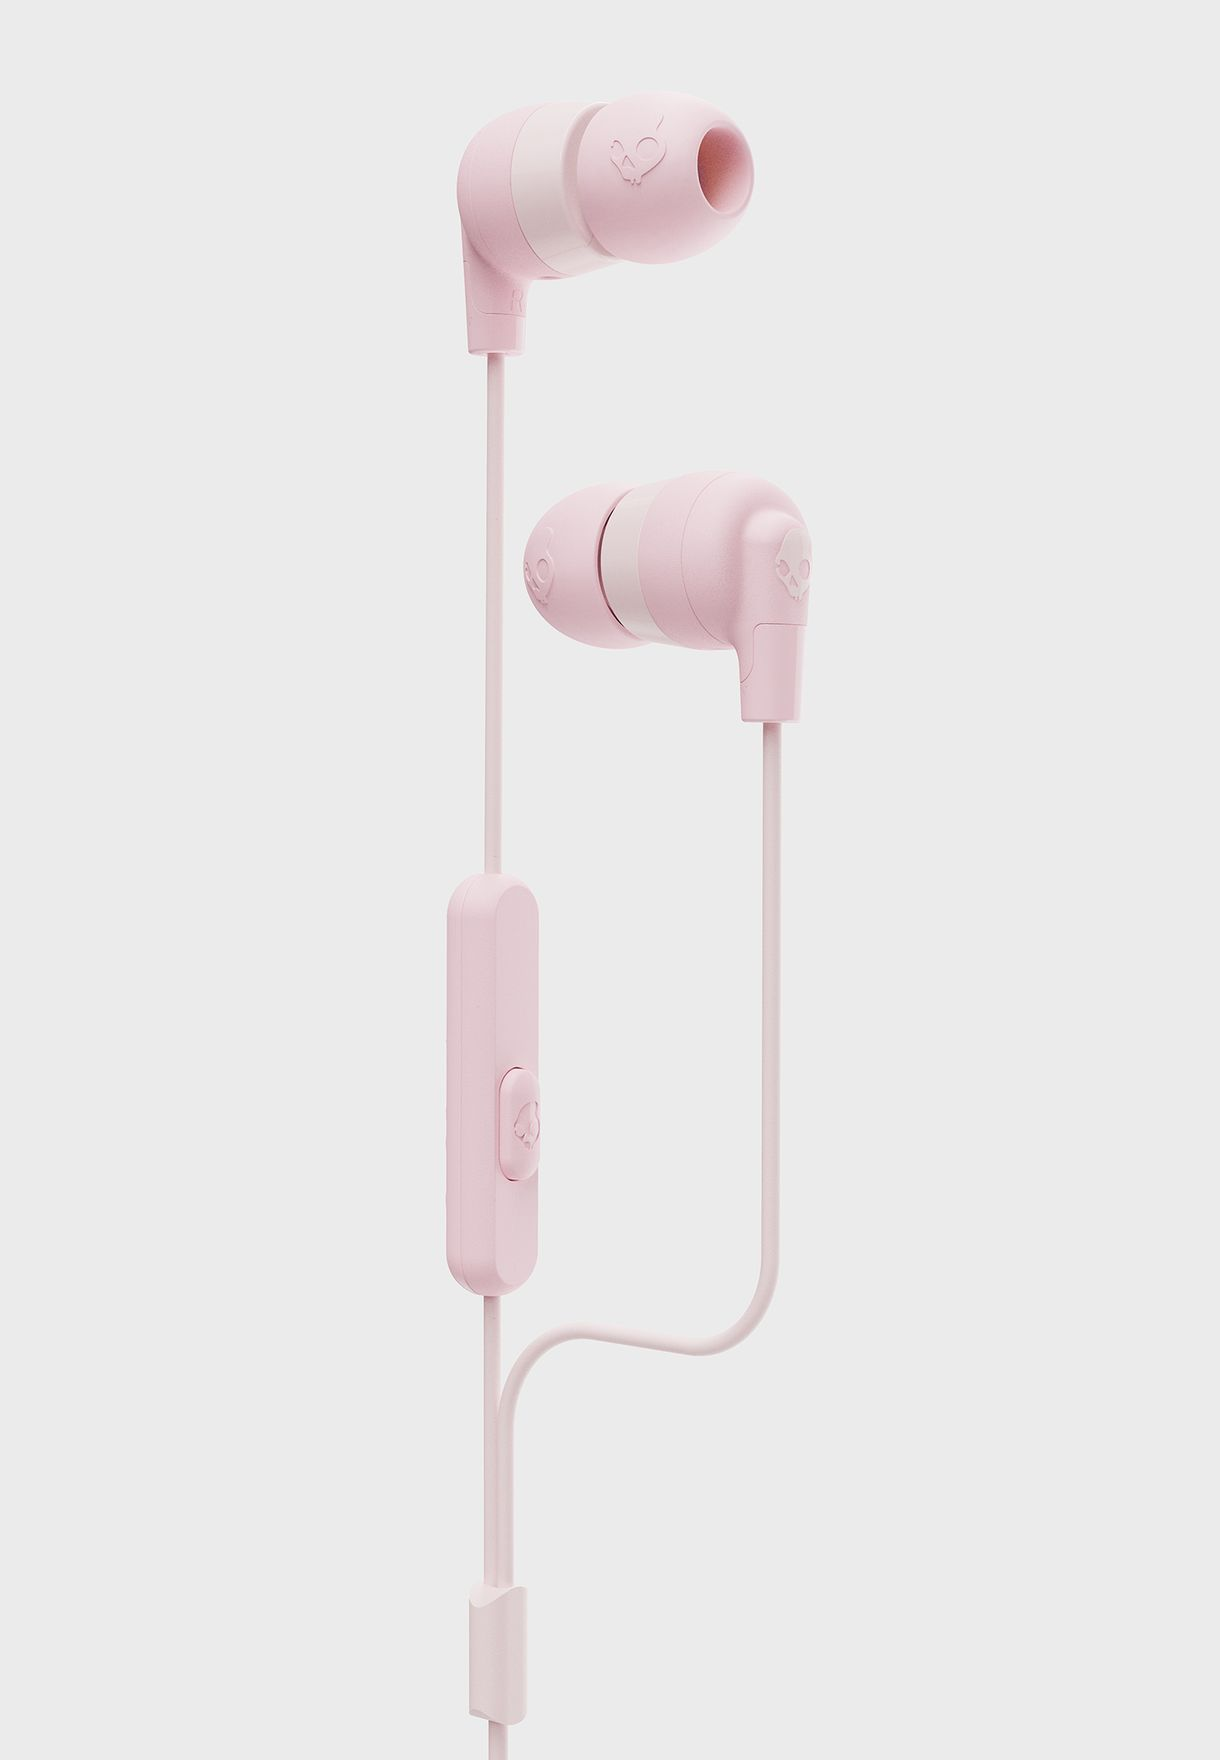 Ink'D+ In-Ear Earbuds With Microphone